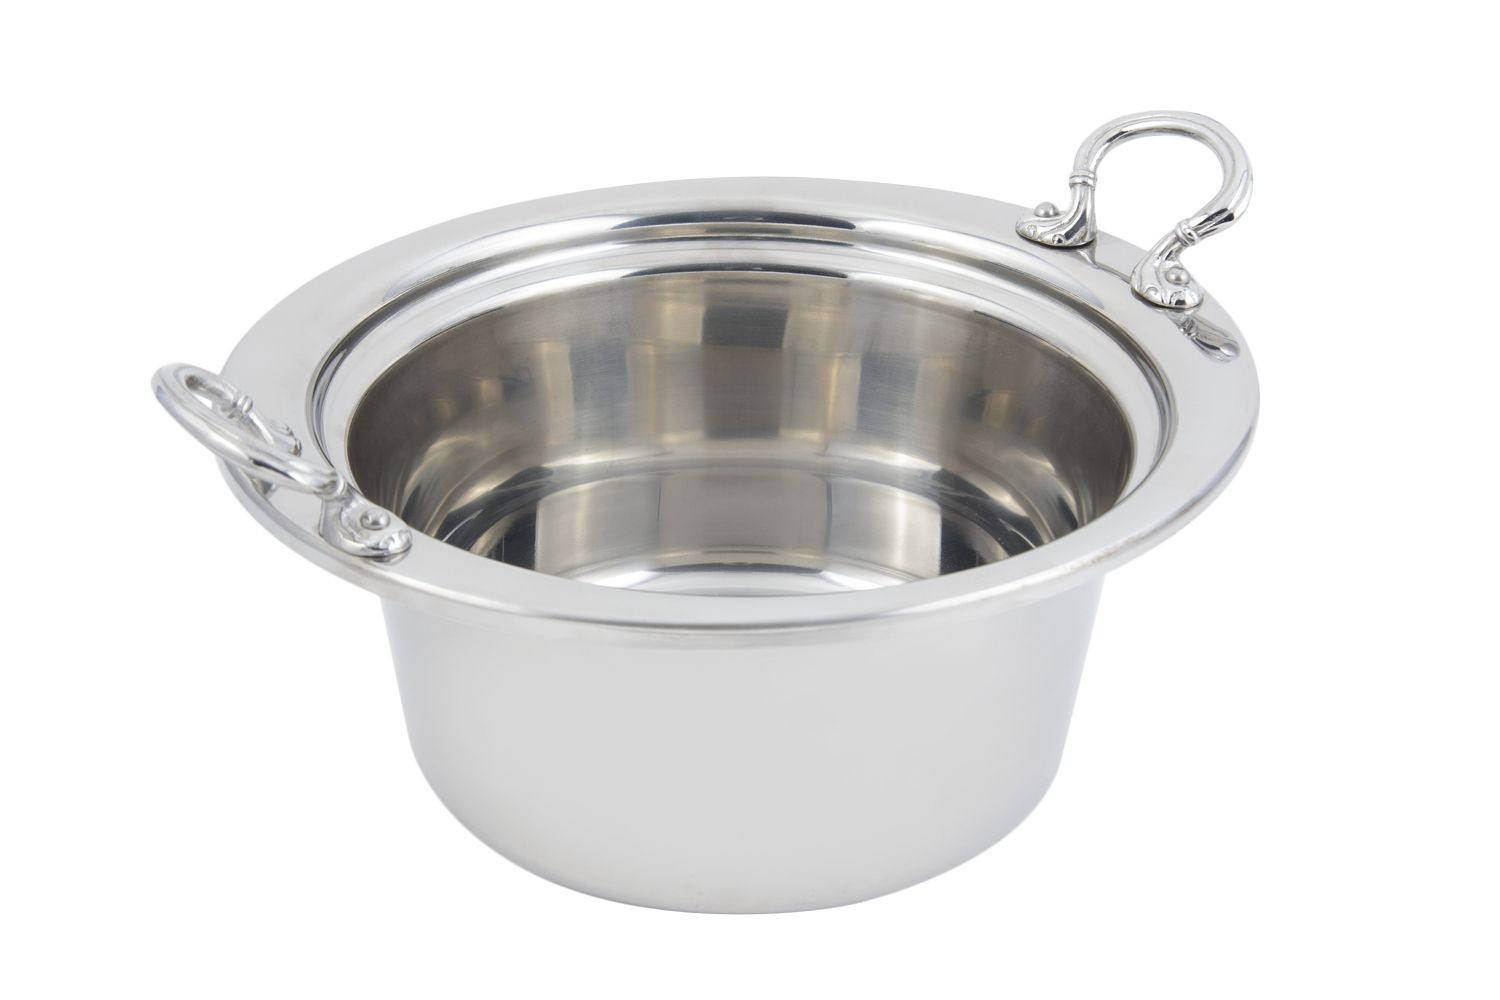 Bon Chef 5260HRSS Plain Design Casserole Dish with Round Stainless Steel Handles, 5 Qt.